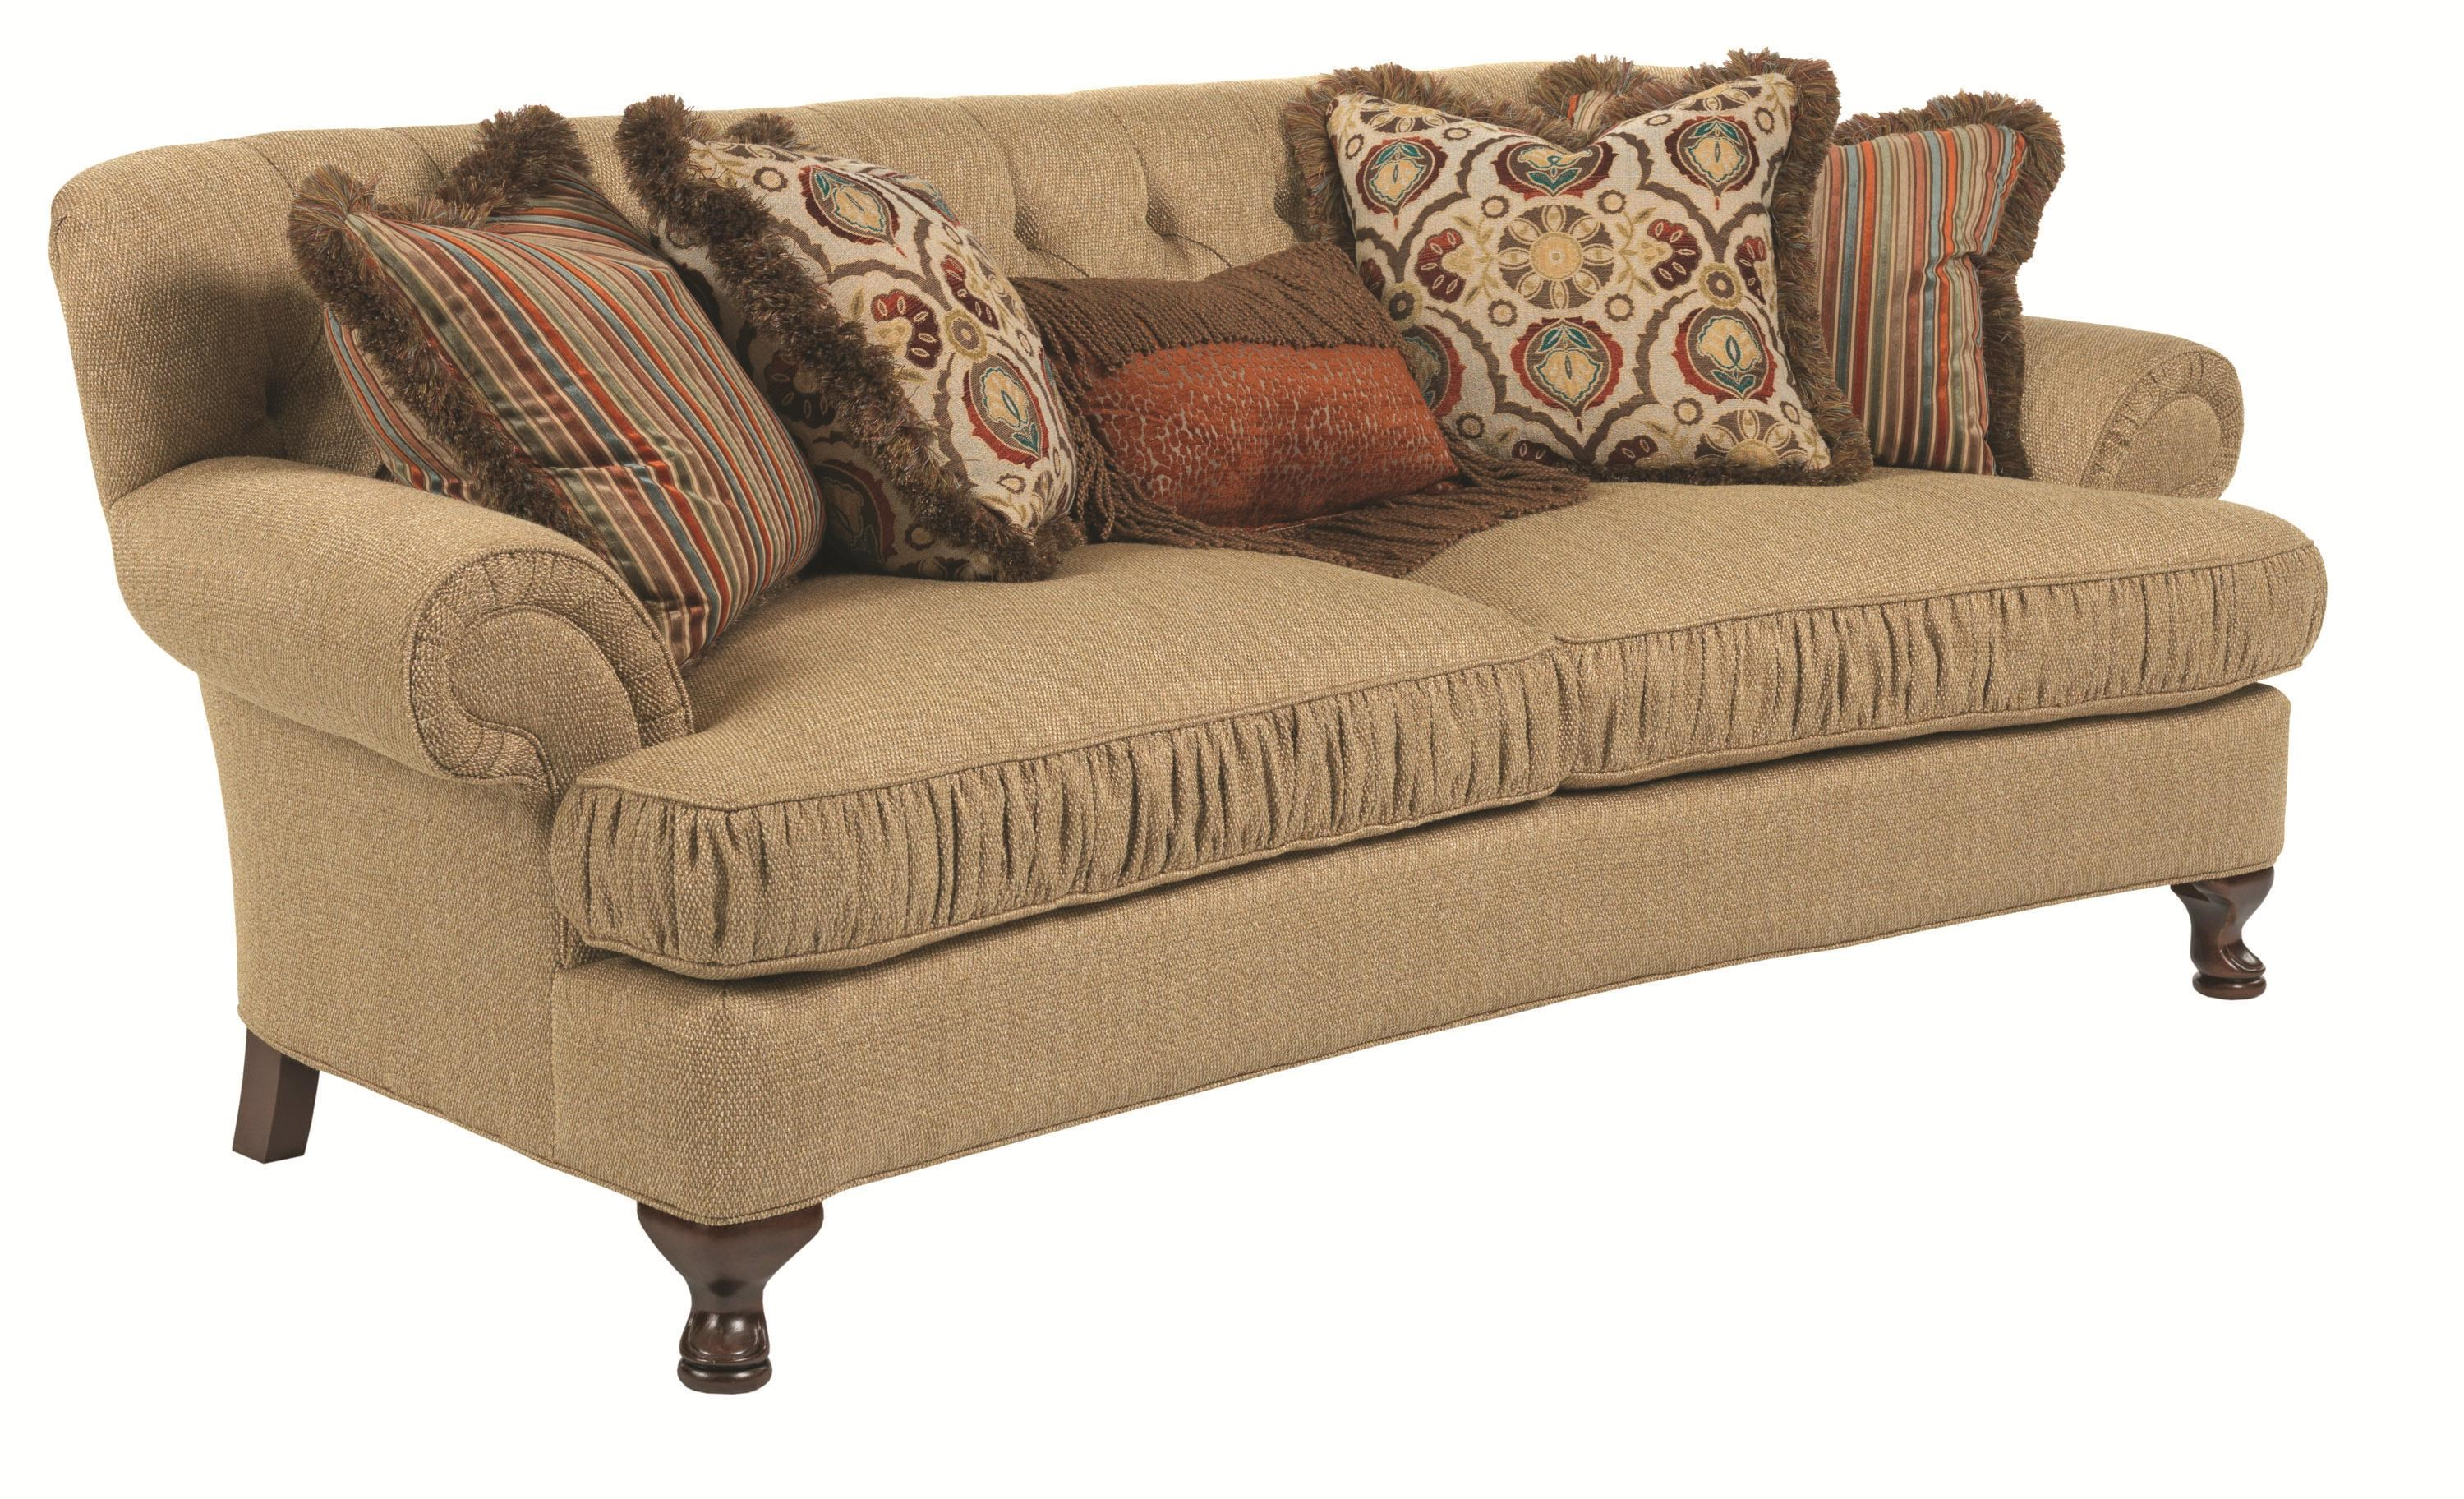 Kincaid Furniture MilanConversation Sofa